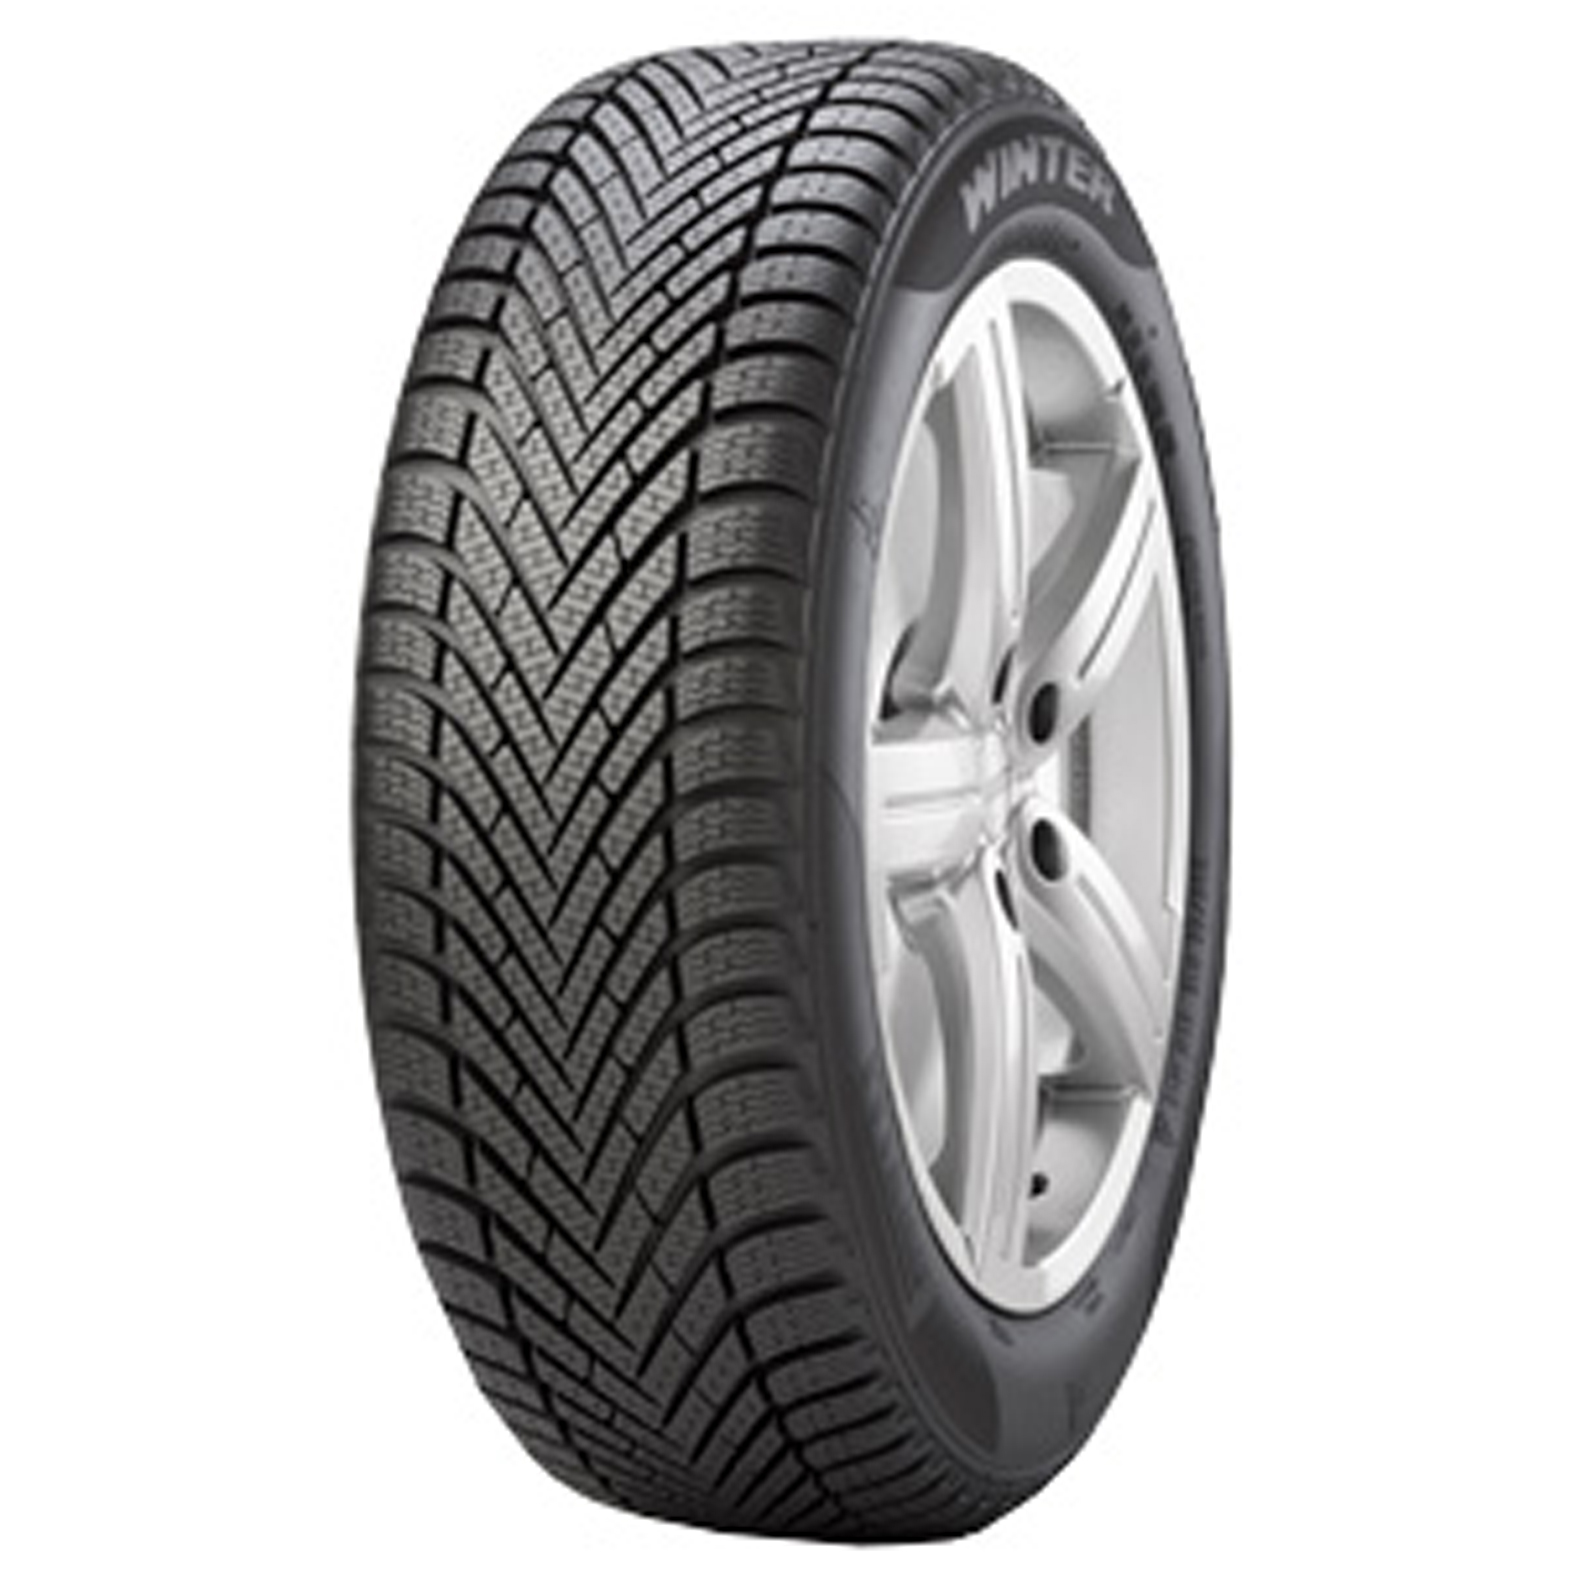 Pirelli Winter Cinturato tire - angle